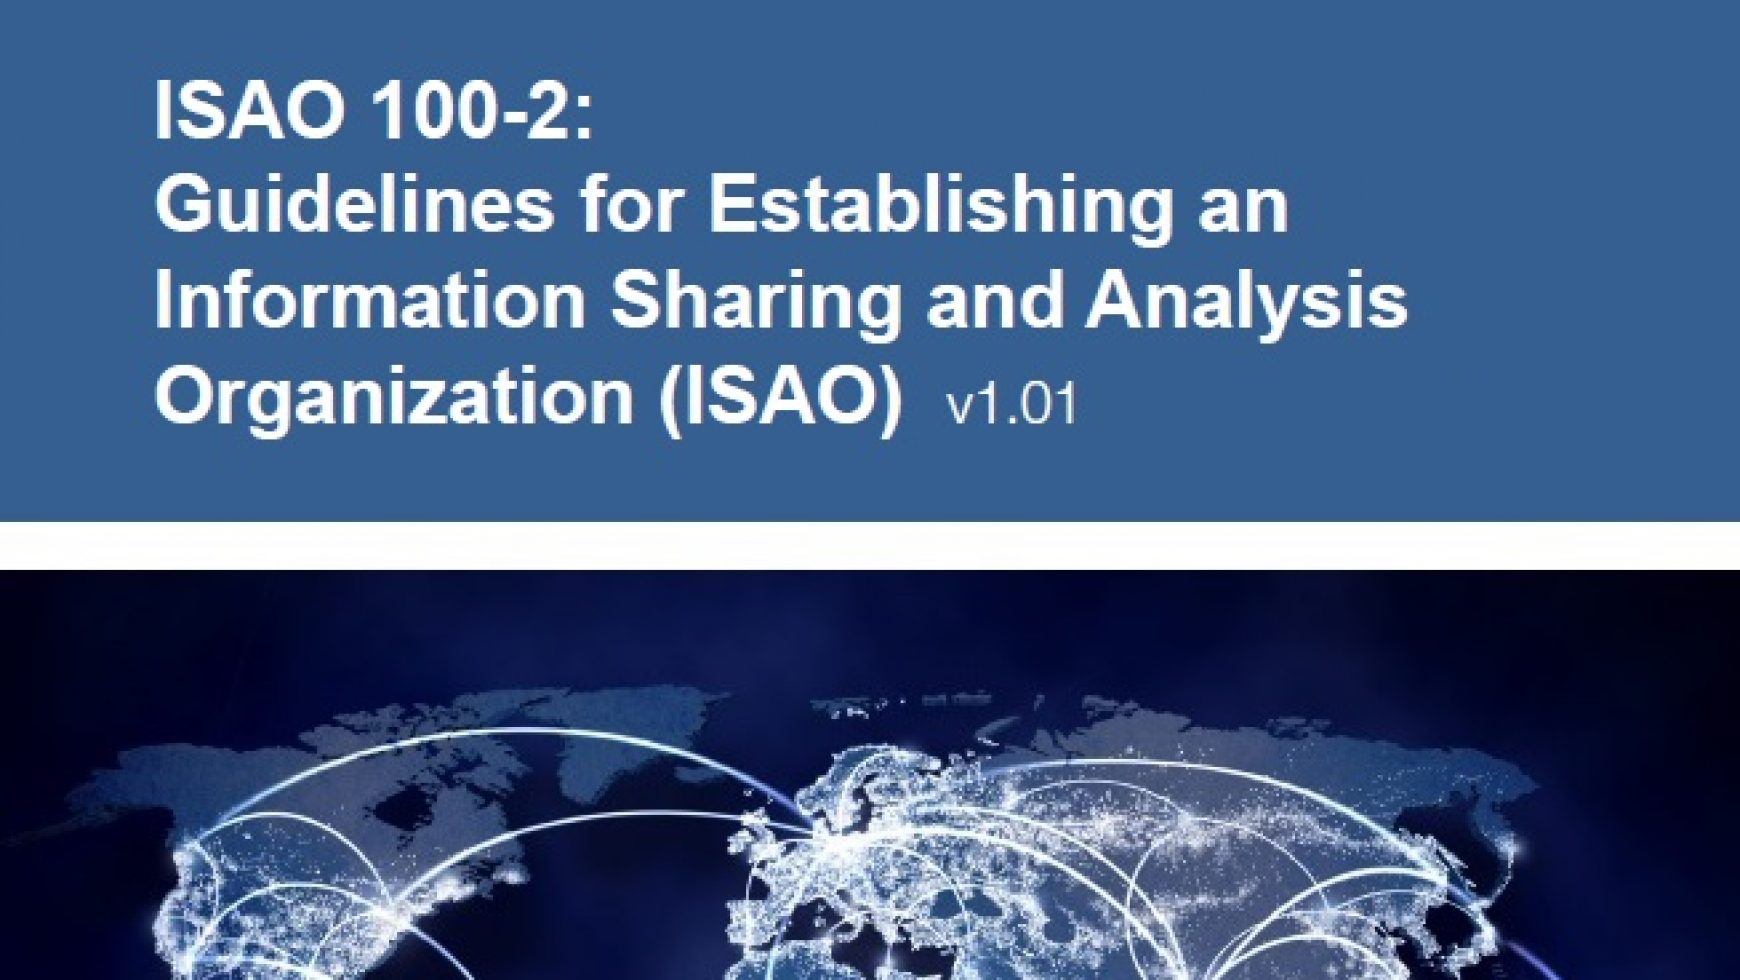 ISAO 100-2: Guidelines for Establishing an Information Sharing and Analysis Organization (ISAO)